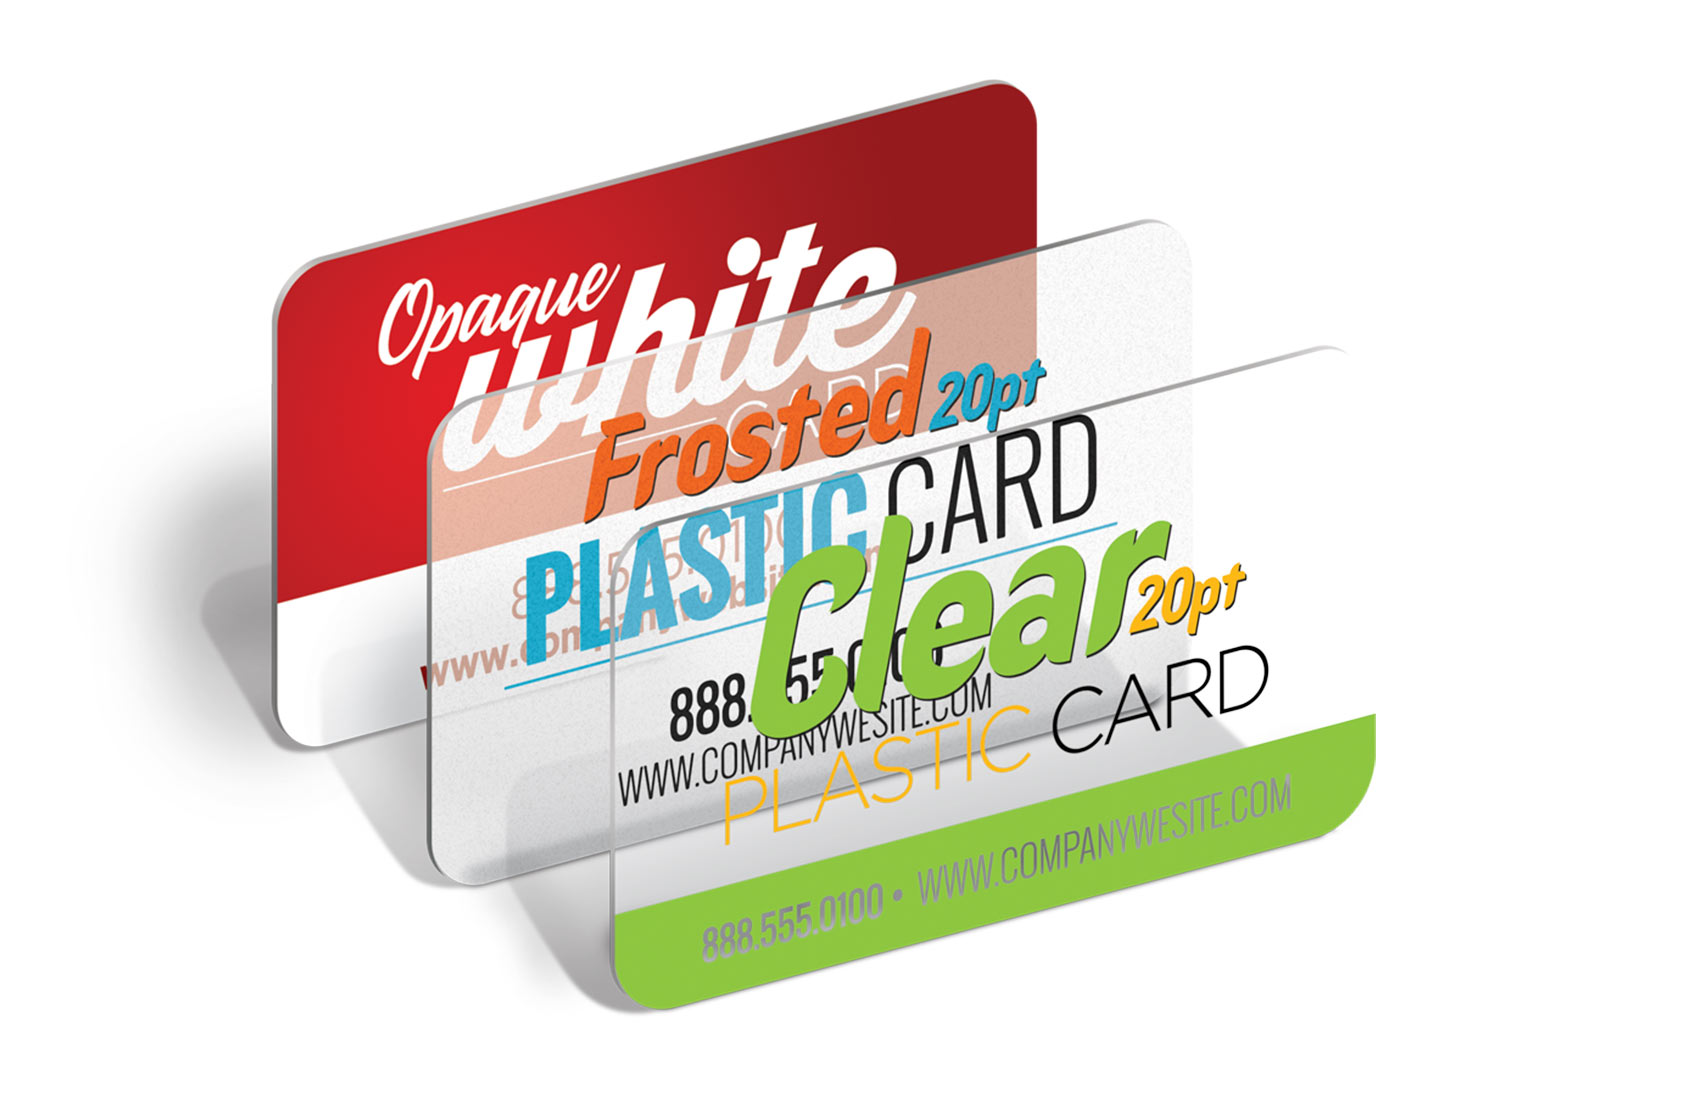 business cards postcards promotional cards and event lanyards choose from 8pt to 20pt thick and opaque white clear and frosted stocks plastic cards